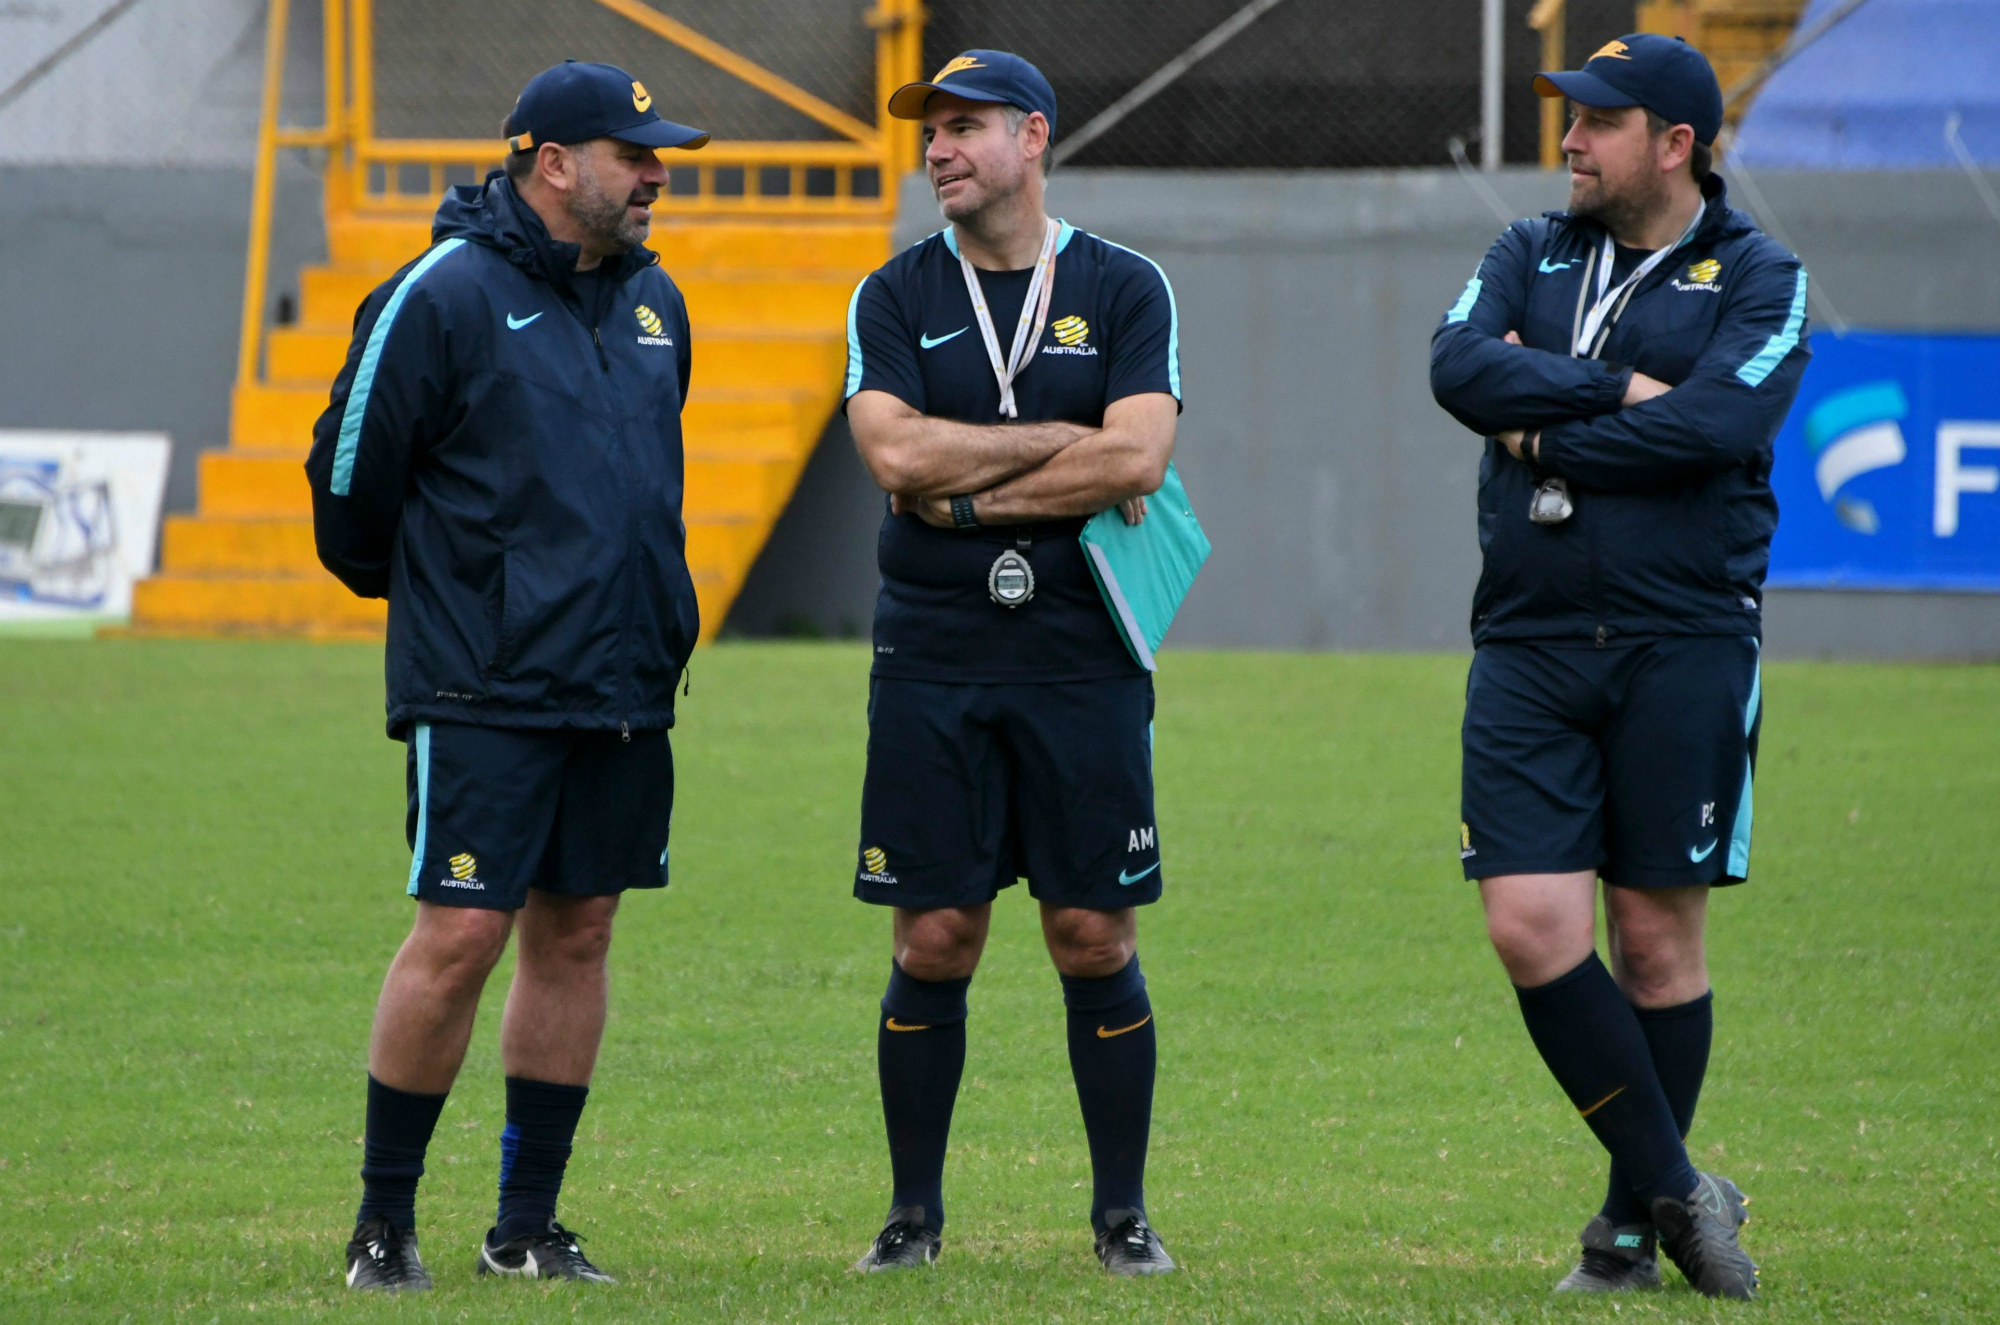 Socceroos coaching staff